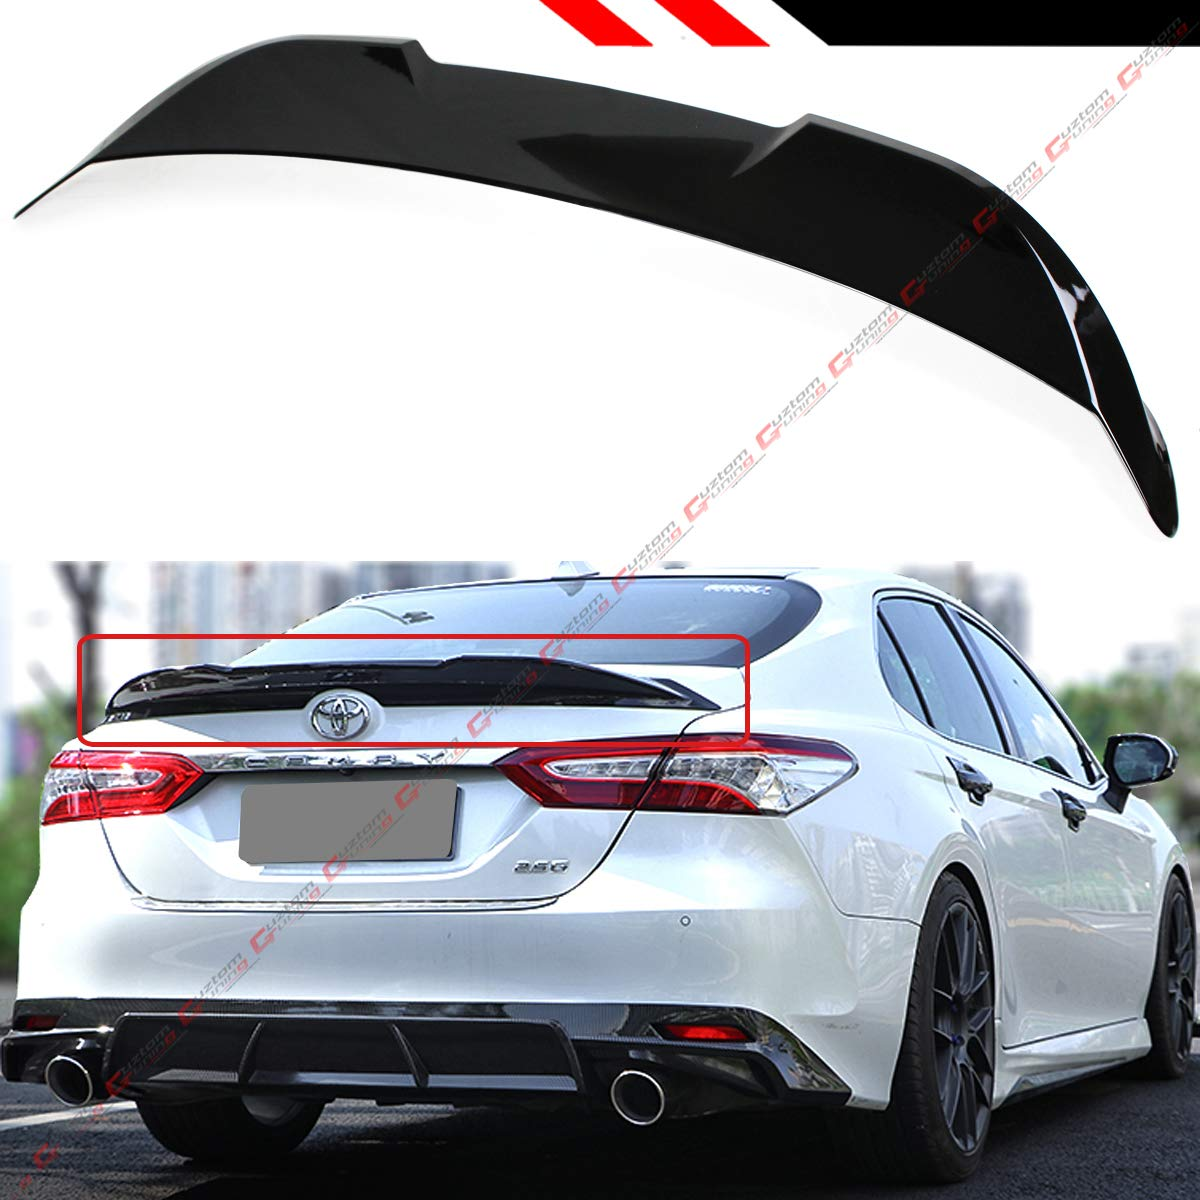 2018 Camry Le >> Cuztom Tuning Fits For 2018 2019 Toyota Camry Le Xle Se Xse Tr Style High Kick Duckbill Rear Trunk Lid Spoiler Wing Painted Gloss Black